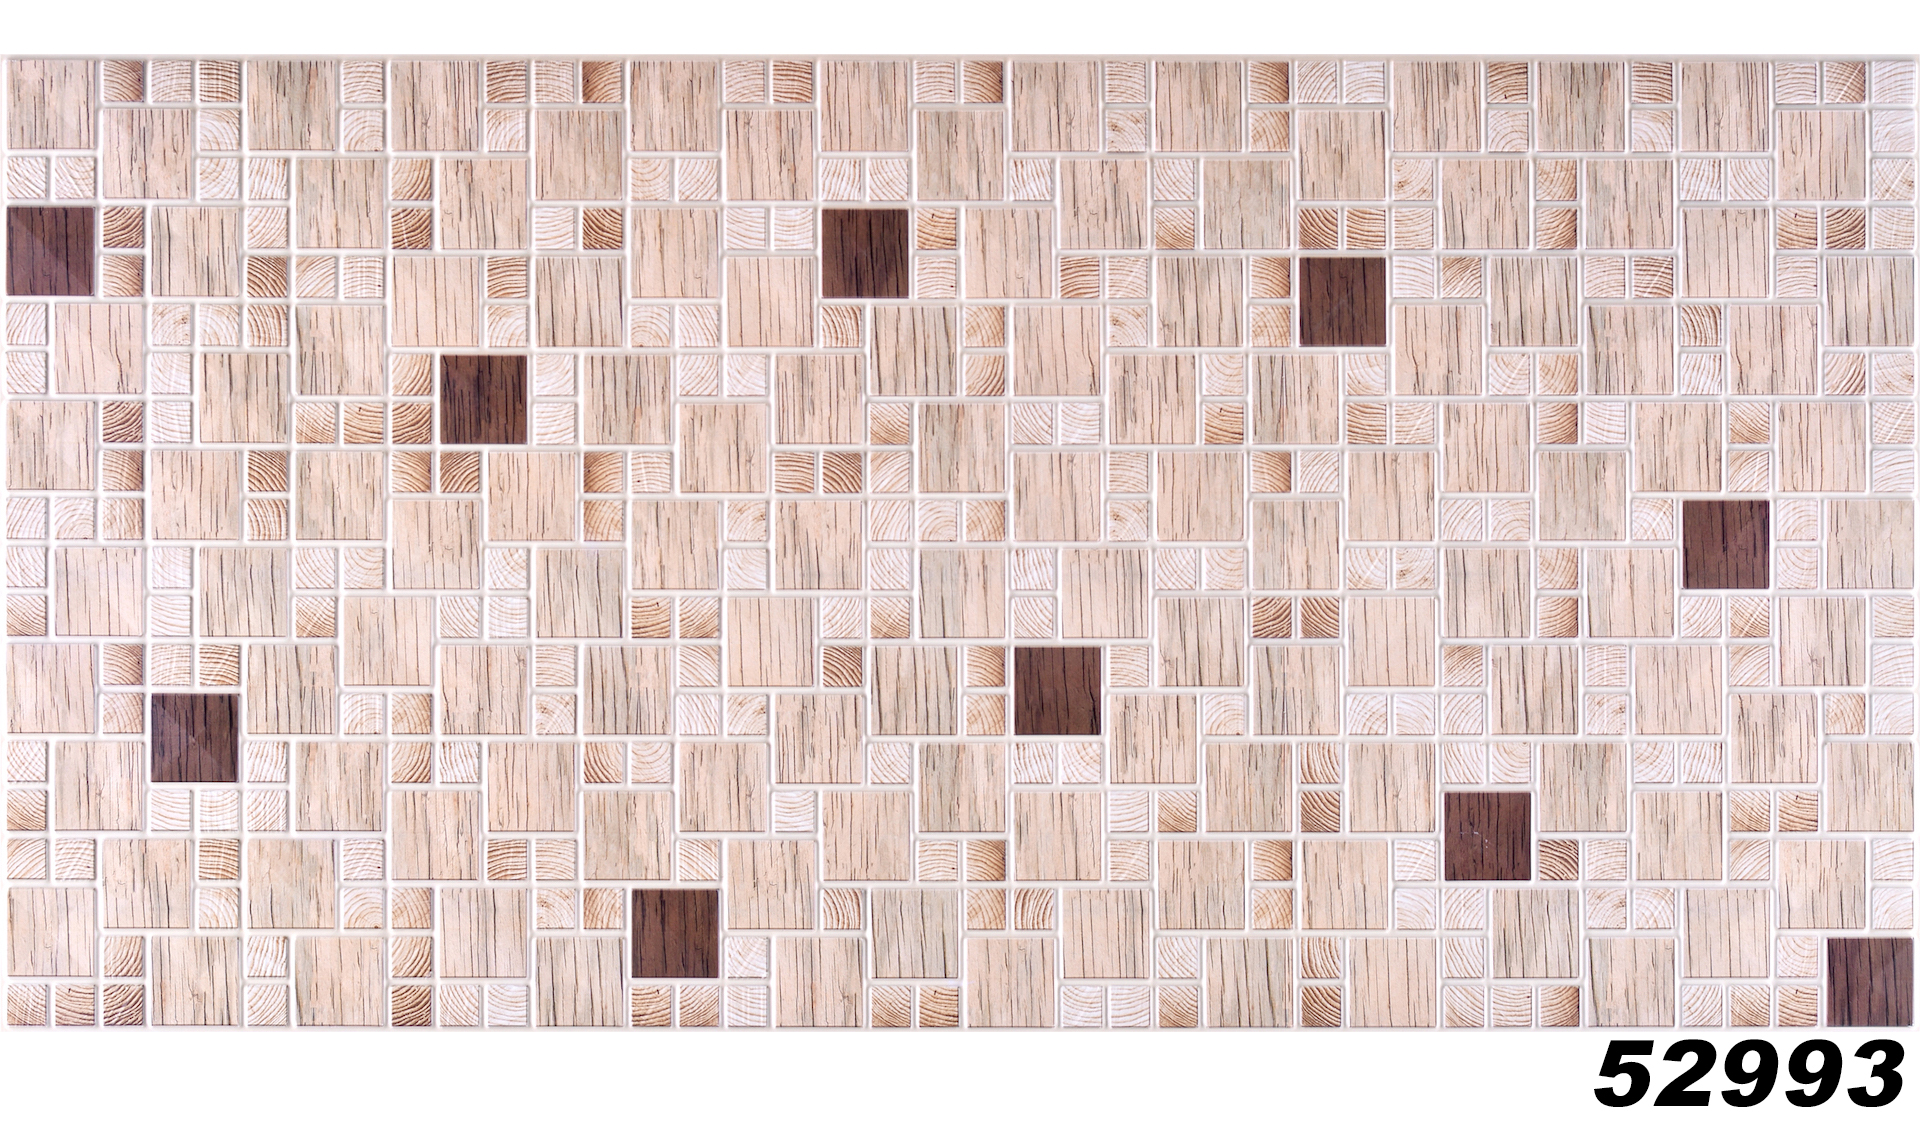 1 pvc dekorplatte mosaic wandverkleidung platten wand paneel 95x48cm 52993 ebay. Black Bedroom Furniture Sets. Home Design Ideas